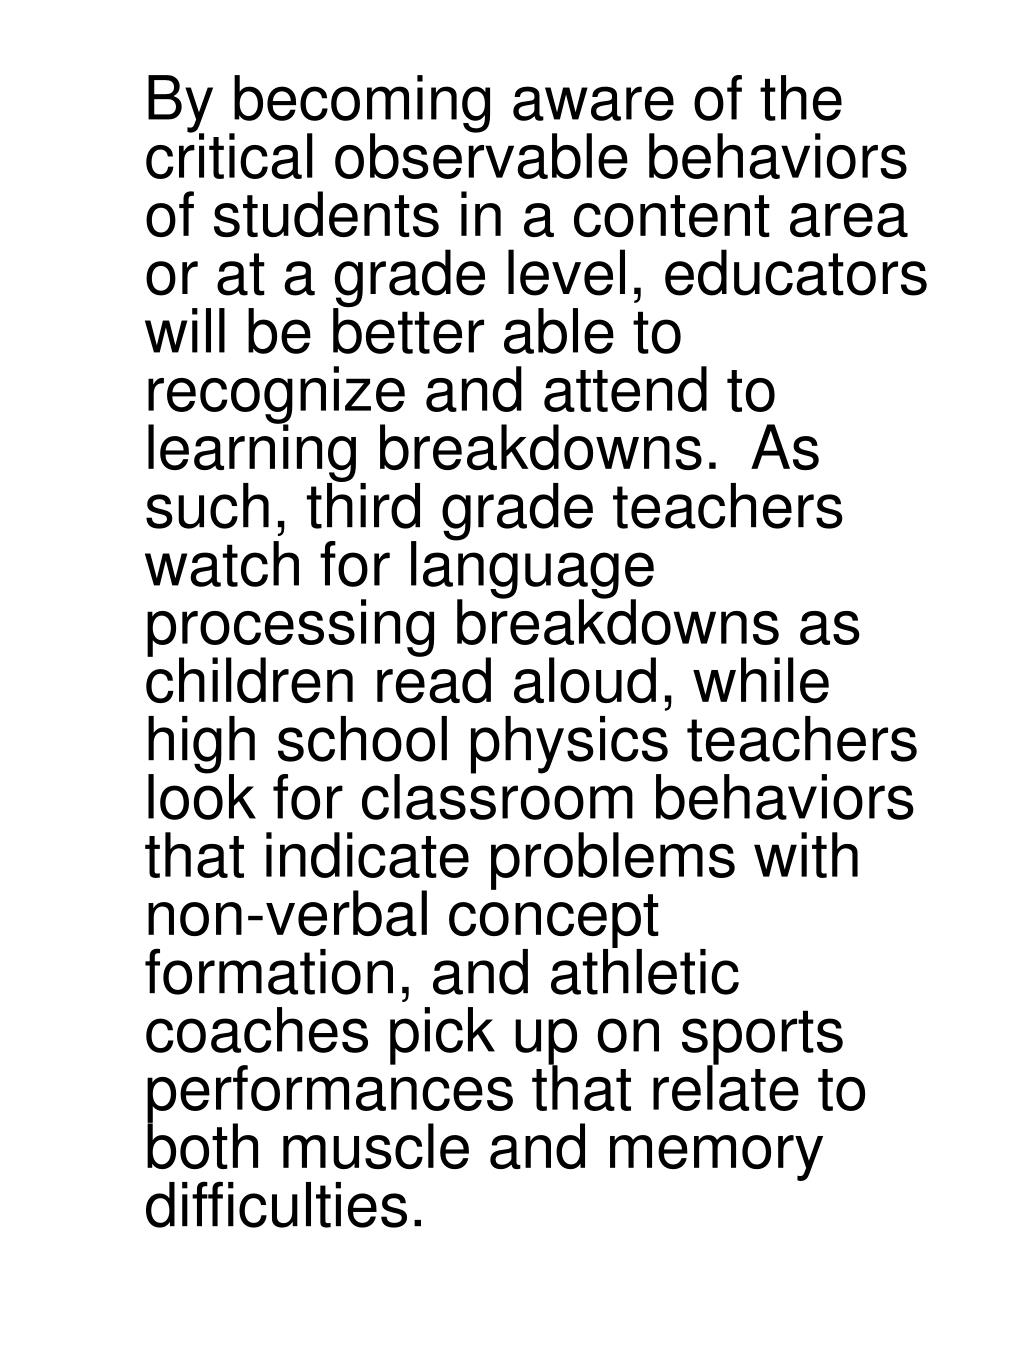 By becoming aware of the critical observable behaviors of students in a content area or at a grade level, educators will be better able to recognize and attend to learning breakdowns.  As such, third grade teachers watch for language processing breakdowns as children read aloud, while high school physics teachers look for classroom behaviors that indicate problems with non-verbal concept formation, and athletic coaches pick up on sports performances that relate to both muscle and memory difficulties.